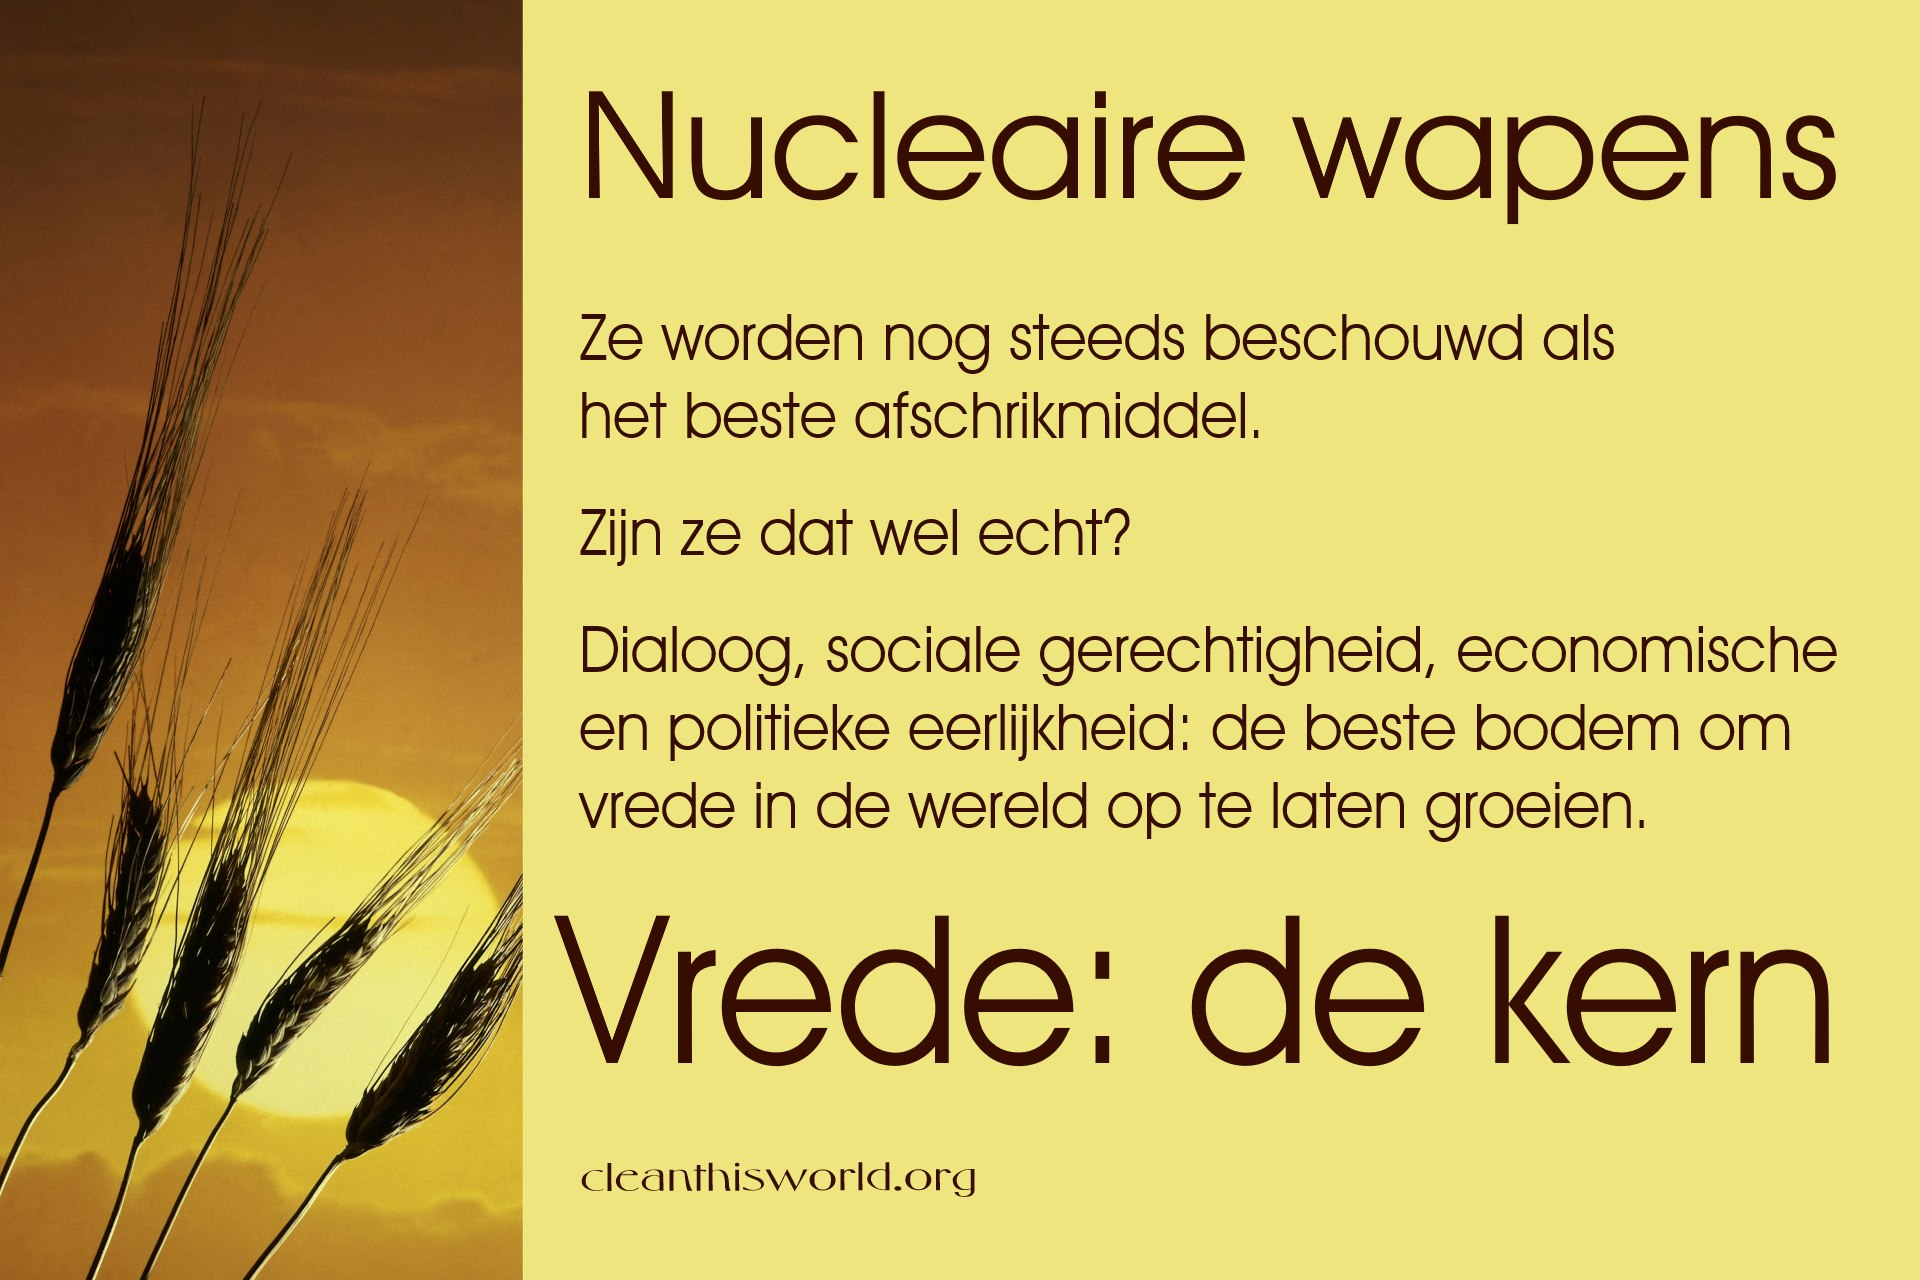 Nucleaire wapens